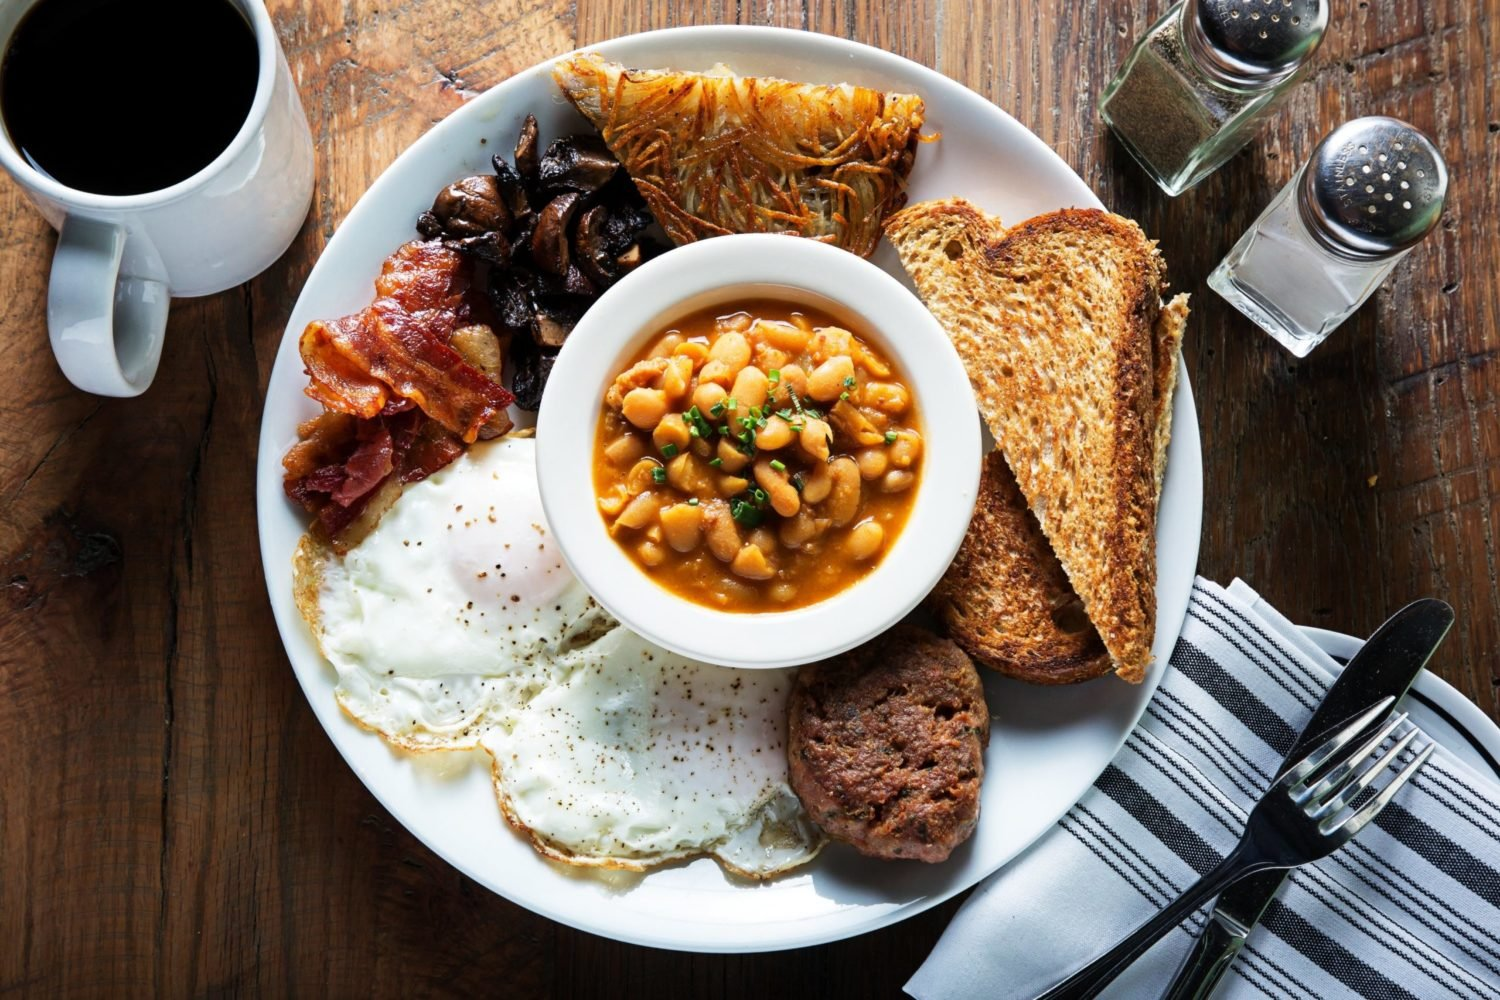 A brunch plate at Boundary Stone. Photo courtesy of Boundary Stone.